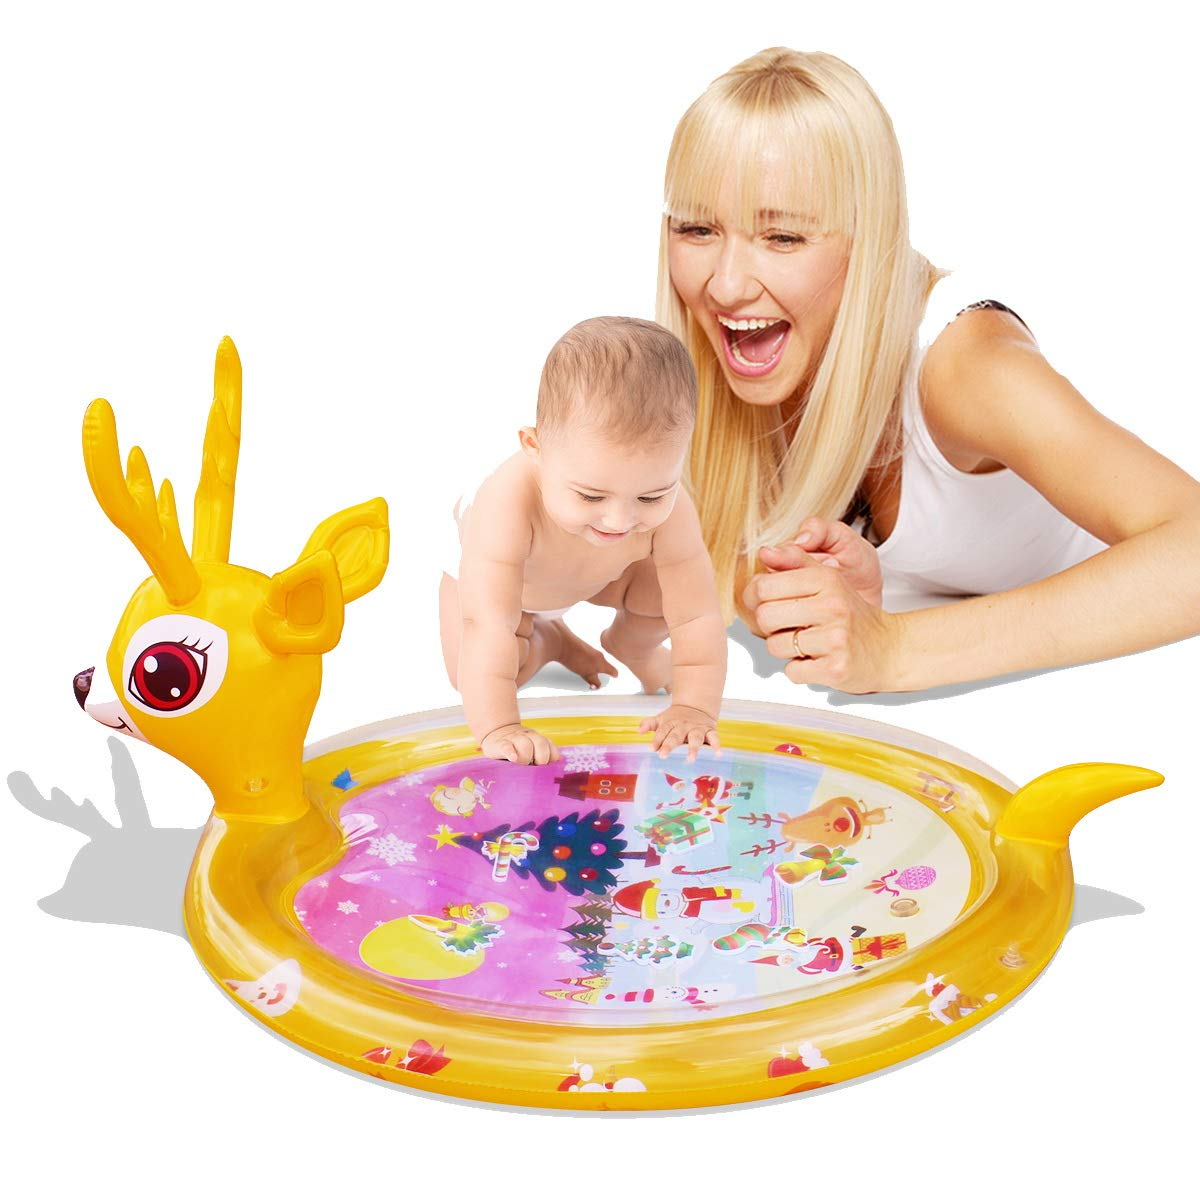 Inflatable Tummy Time Premium Water mat Infants and Toddlers is The Perfect Fun time Play Activity Center Your Baby's Stimulation Growth(80 x 70 cm)